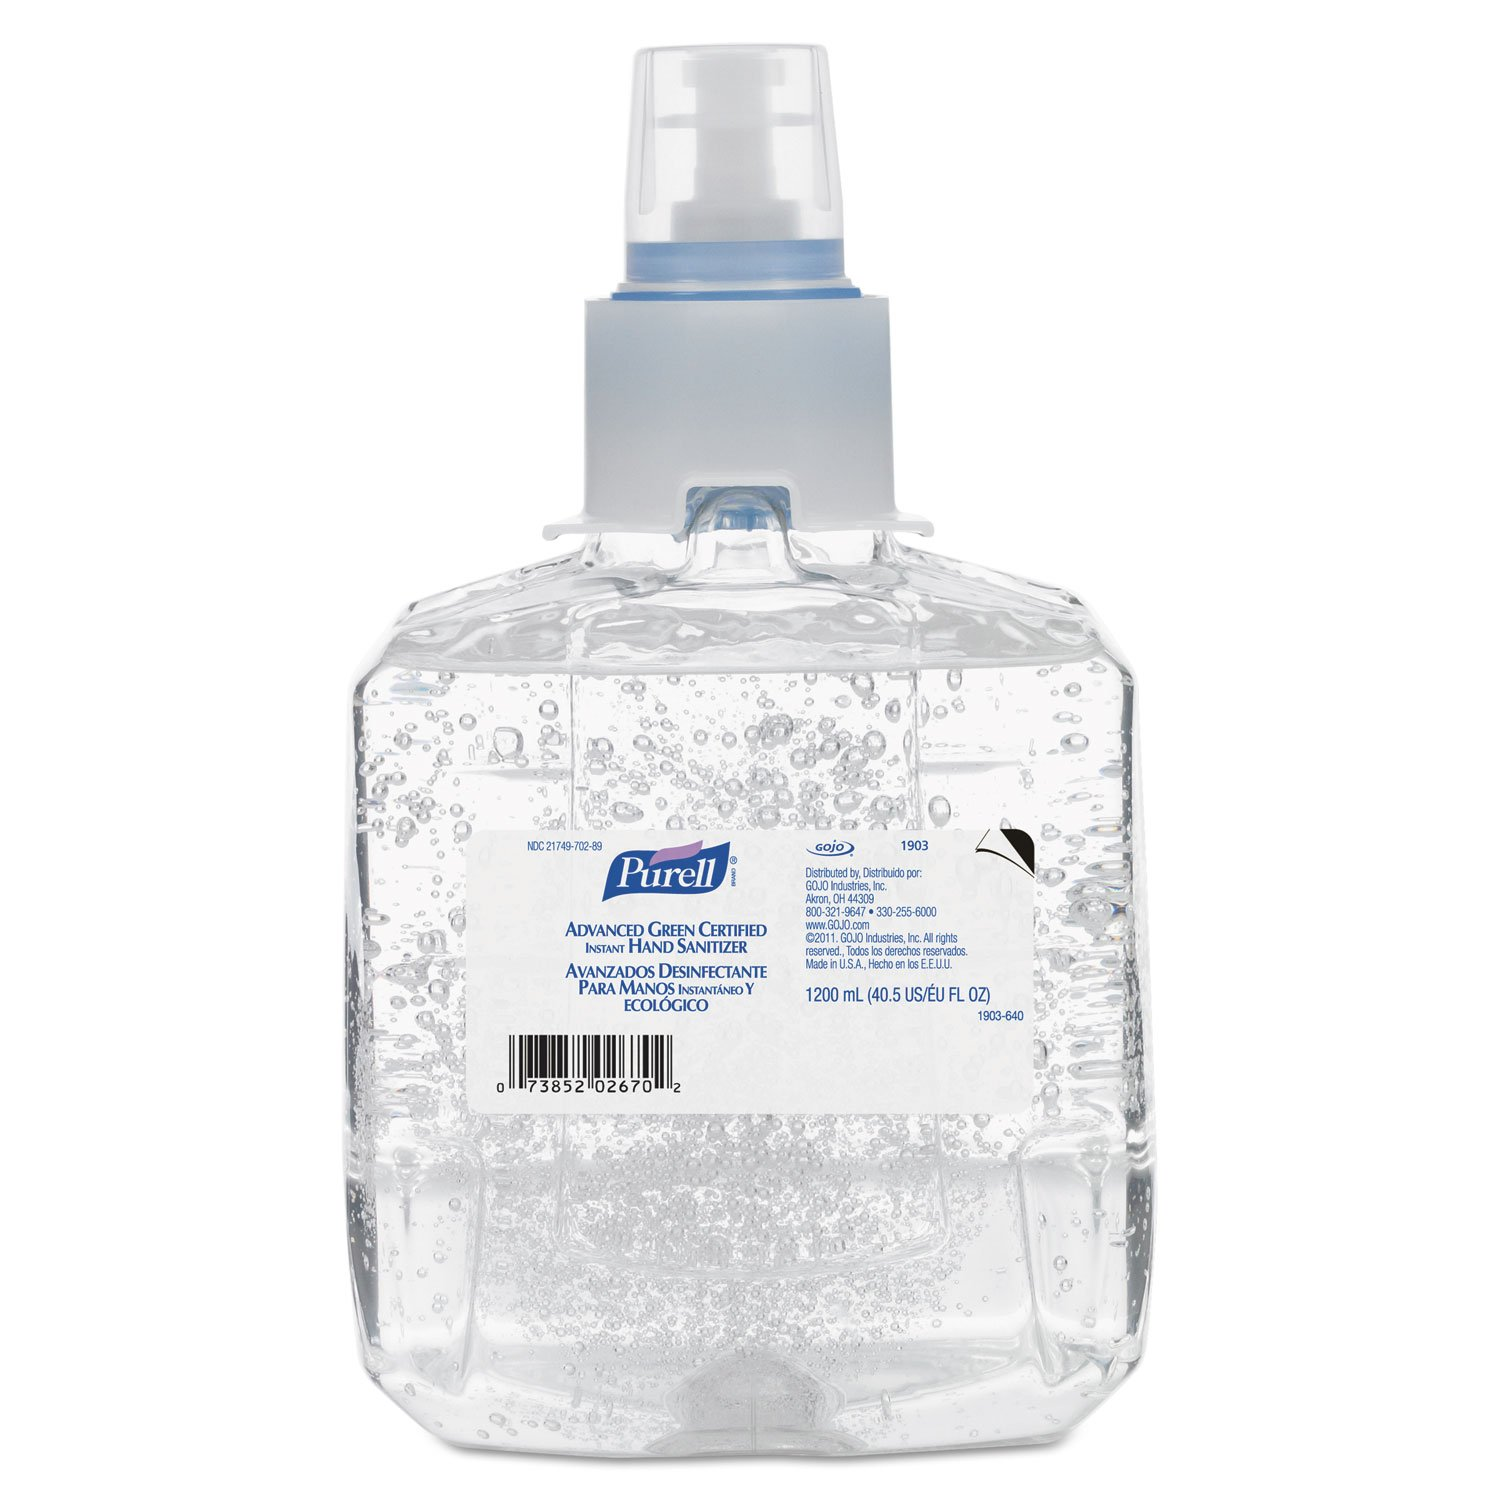 PURELL 190302CT Advanced Green Certified Hand Sanitizer Refill, 1200mL, Fragrance Free (Case of 2)